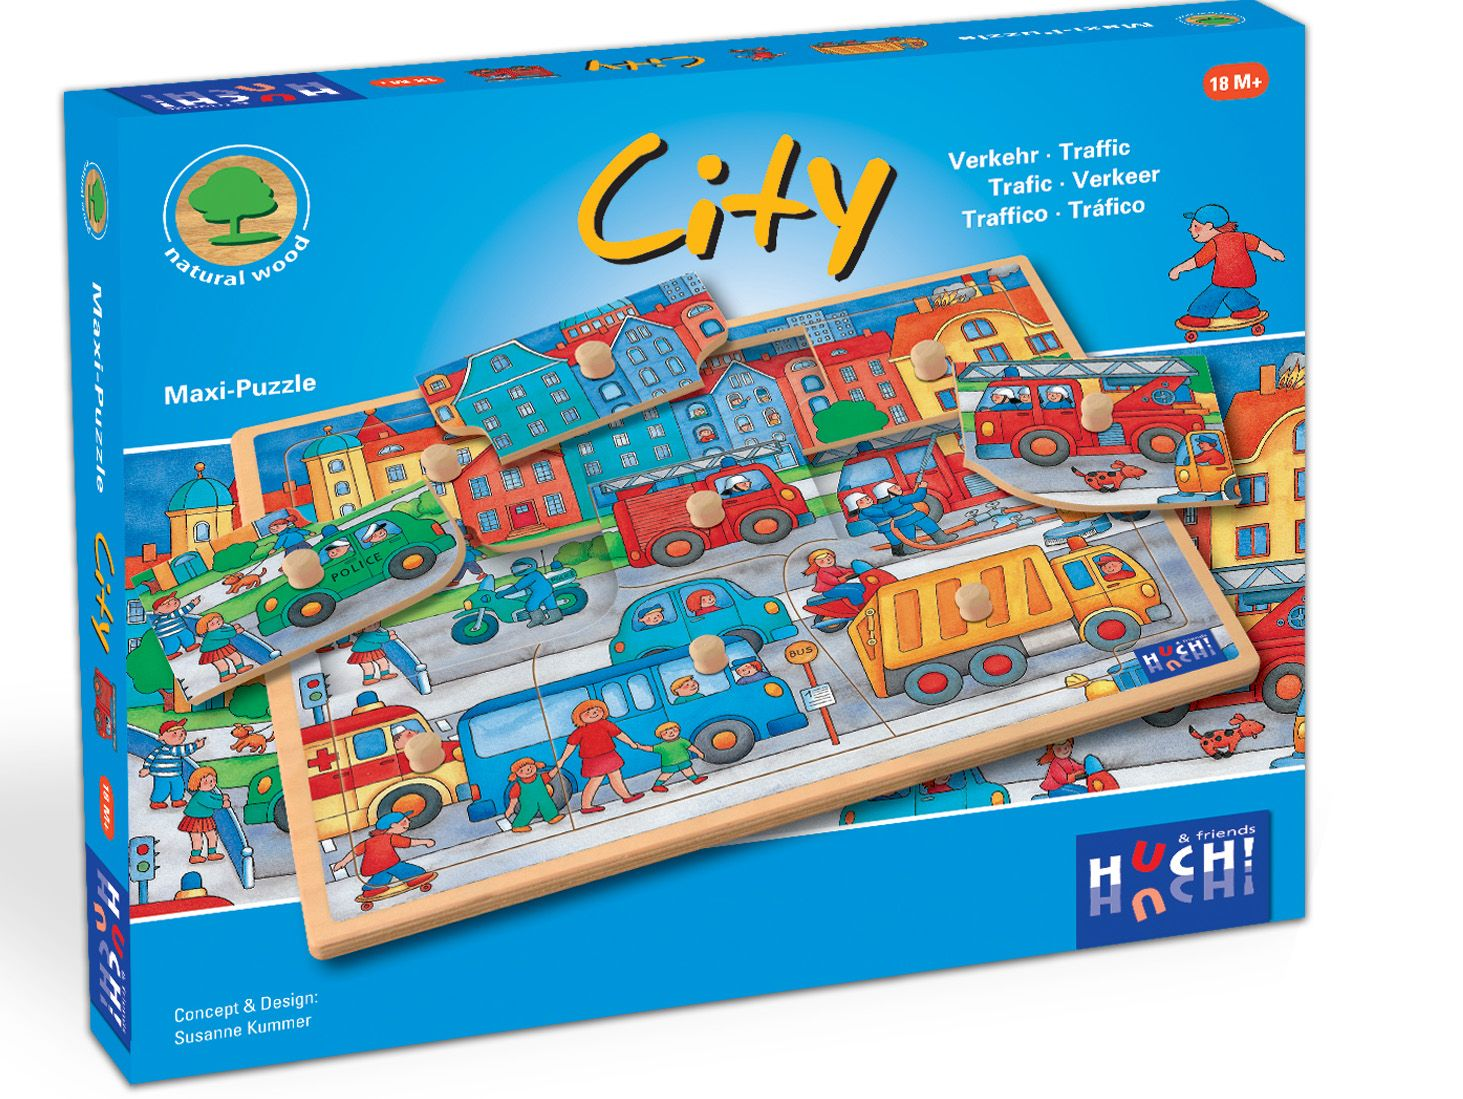 HUCH FRIENDS Huch! & friends Puzzle, 9 Maxi-Teile, »Wooden Line City«